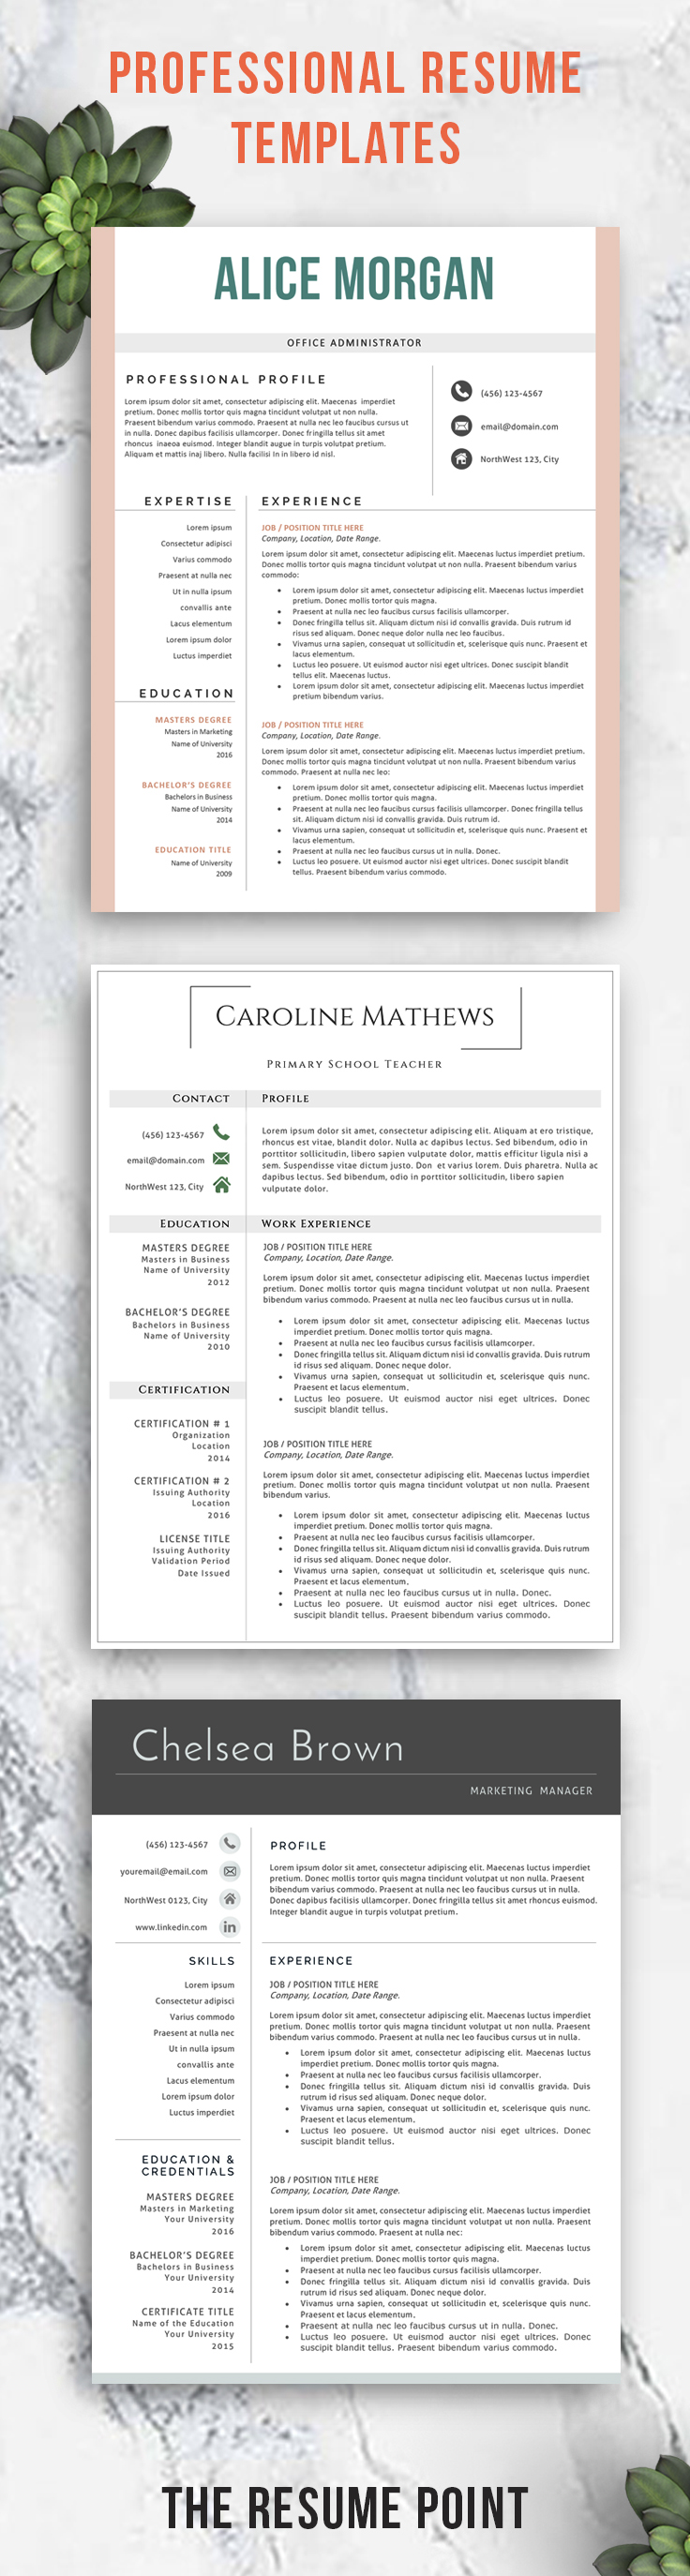 Resume Template For Professionals Easily Editable In Microsoft Word